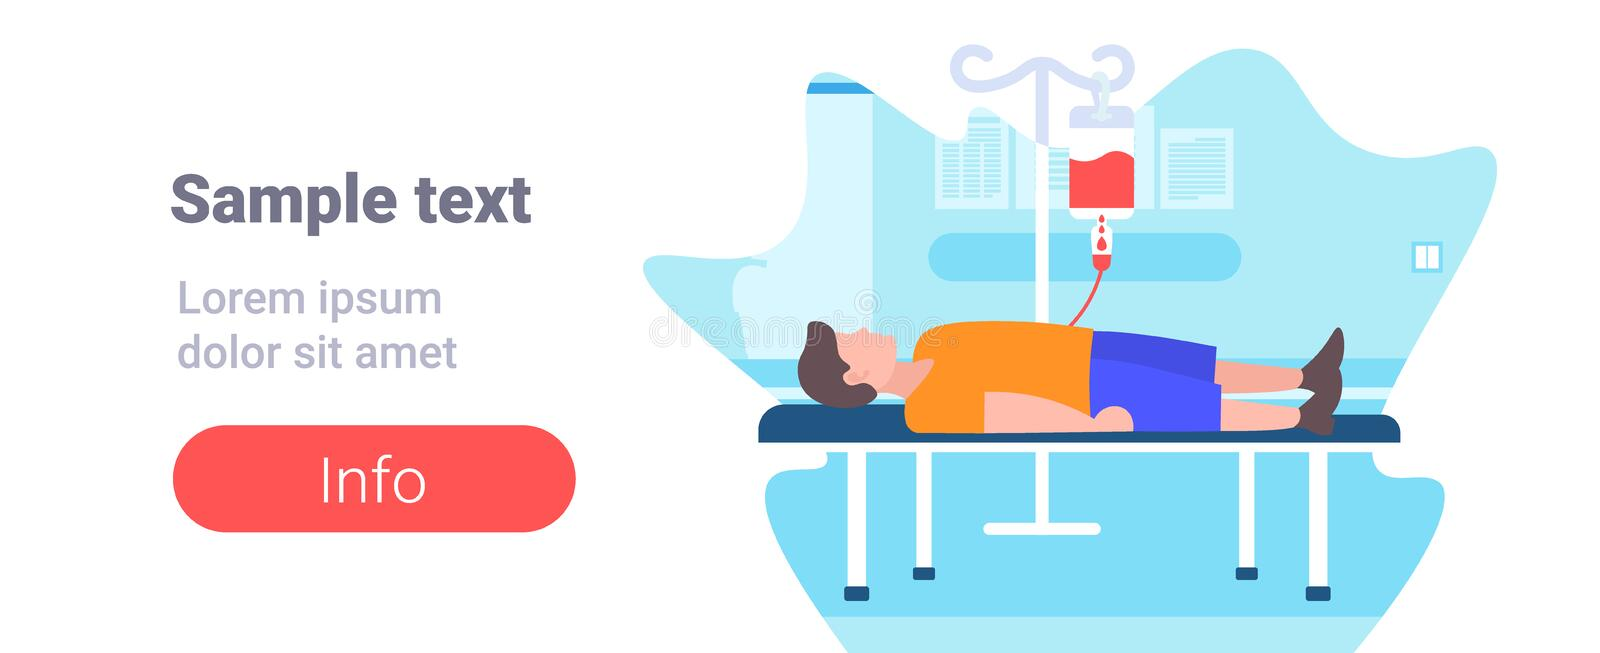 Sick injured patient lying in medical bed with dropper healthcare concept clinic ward hospital interior flat horizontal vector illustration